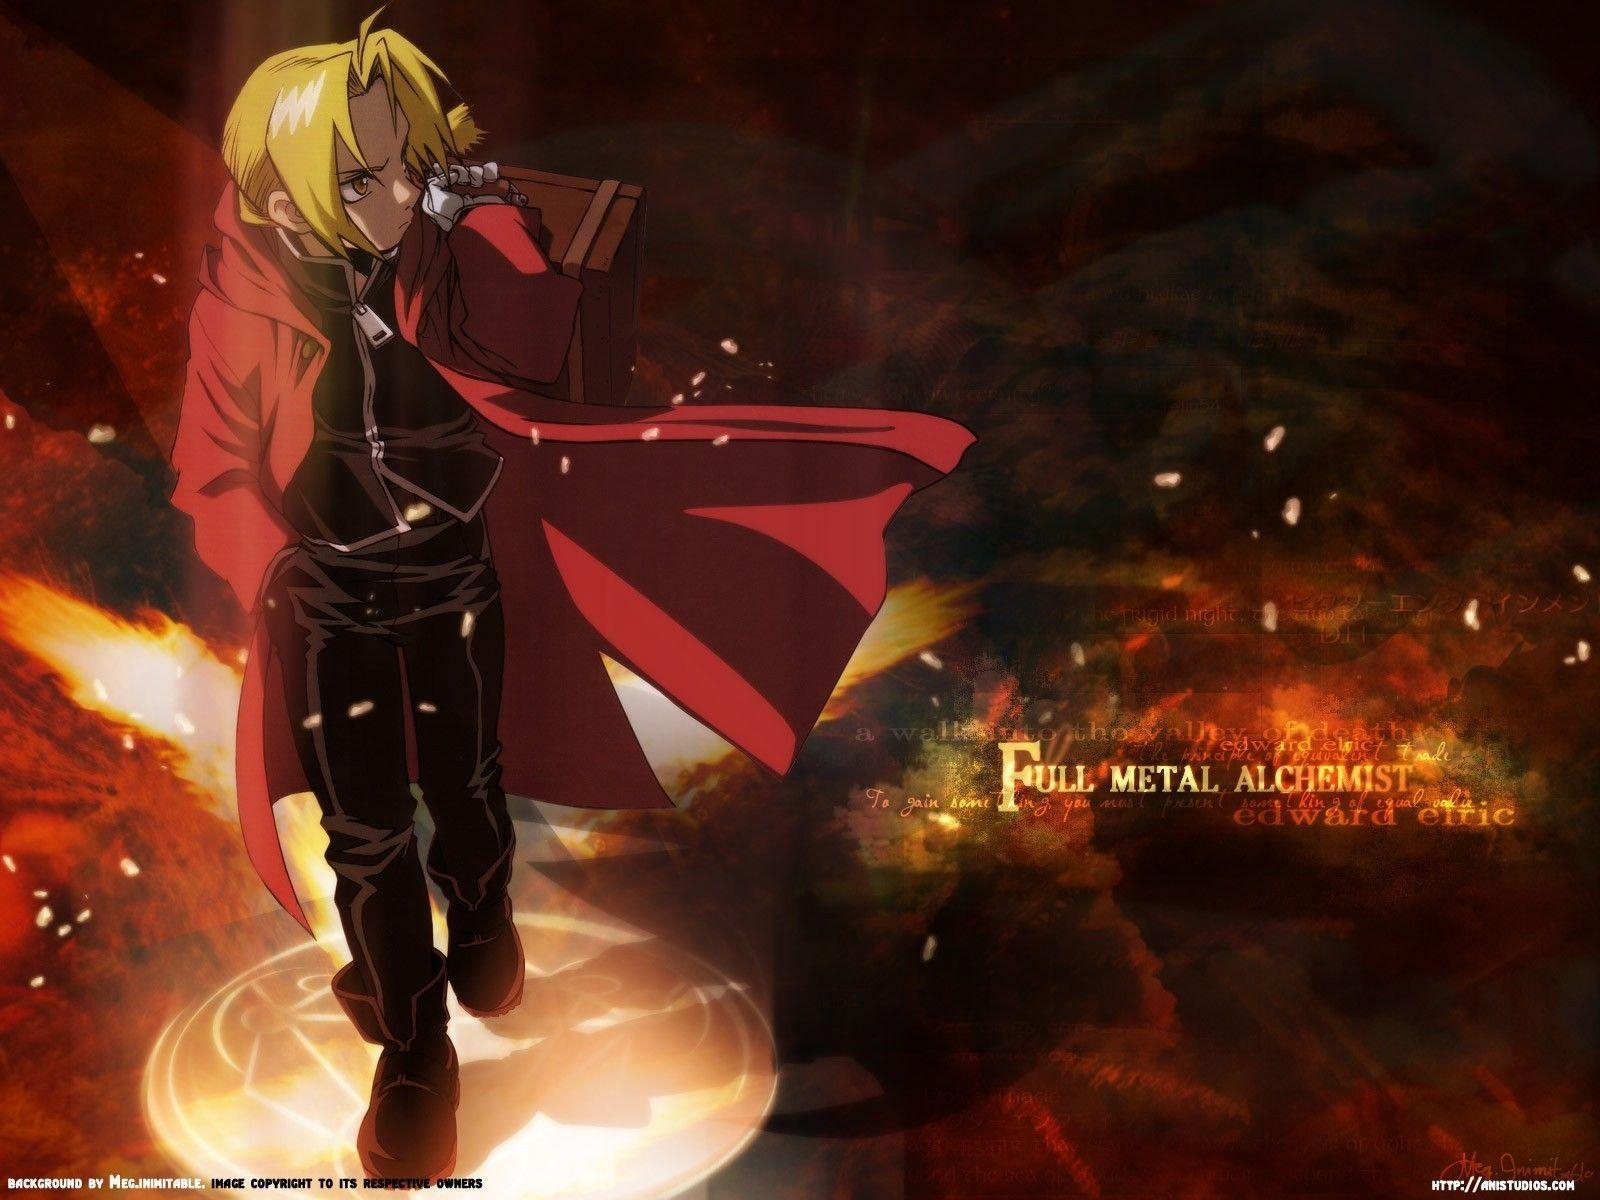 Download Edward Elric Wallpapers 1600x1200